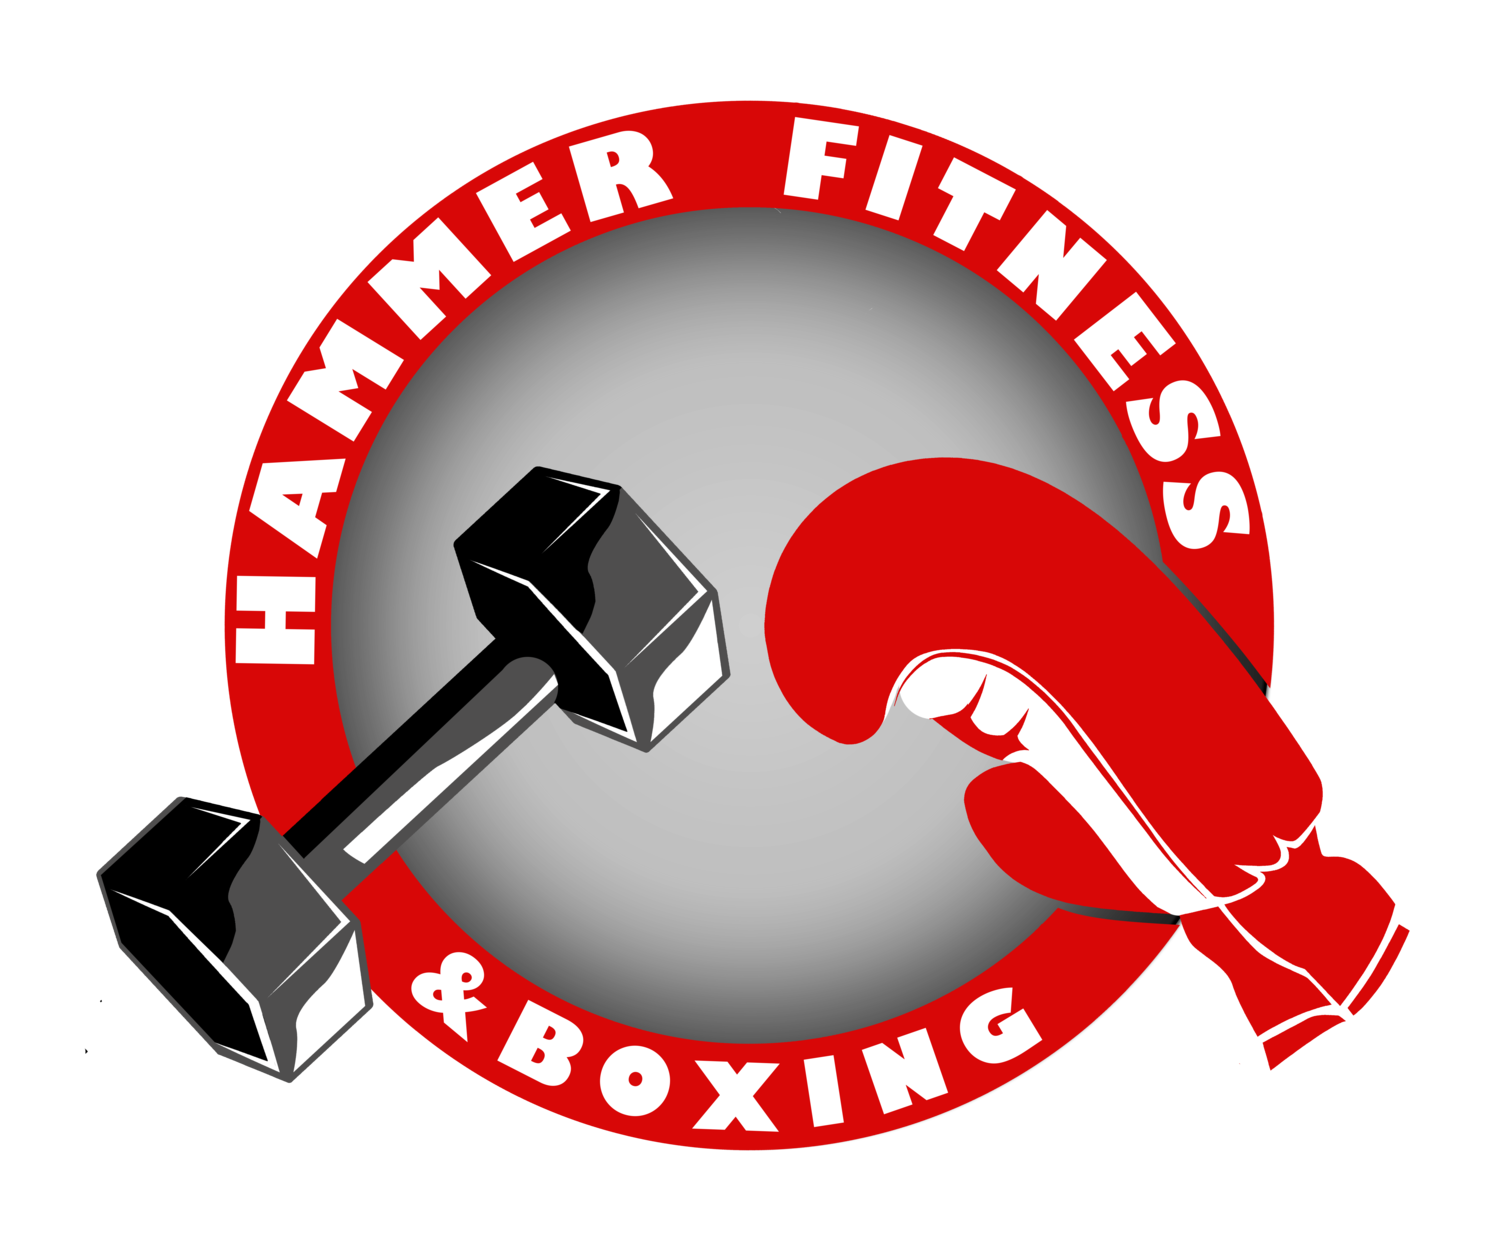 Semi private personal training. Dumbbell clipart fitness class